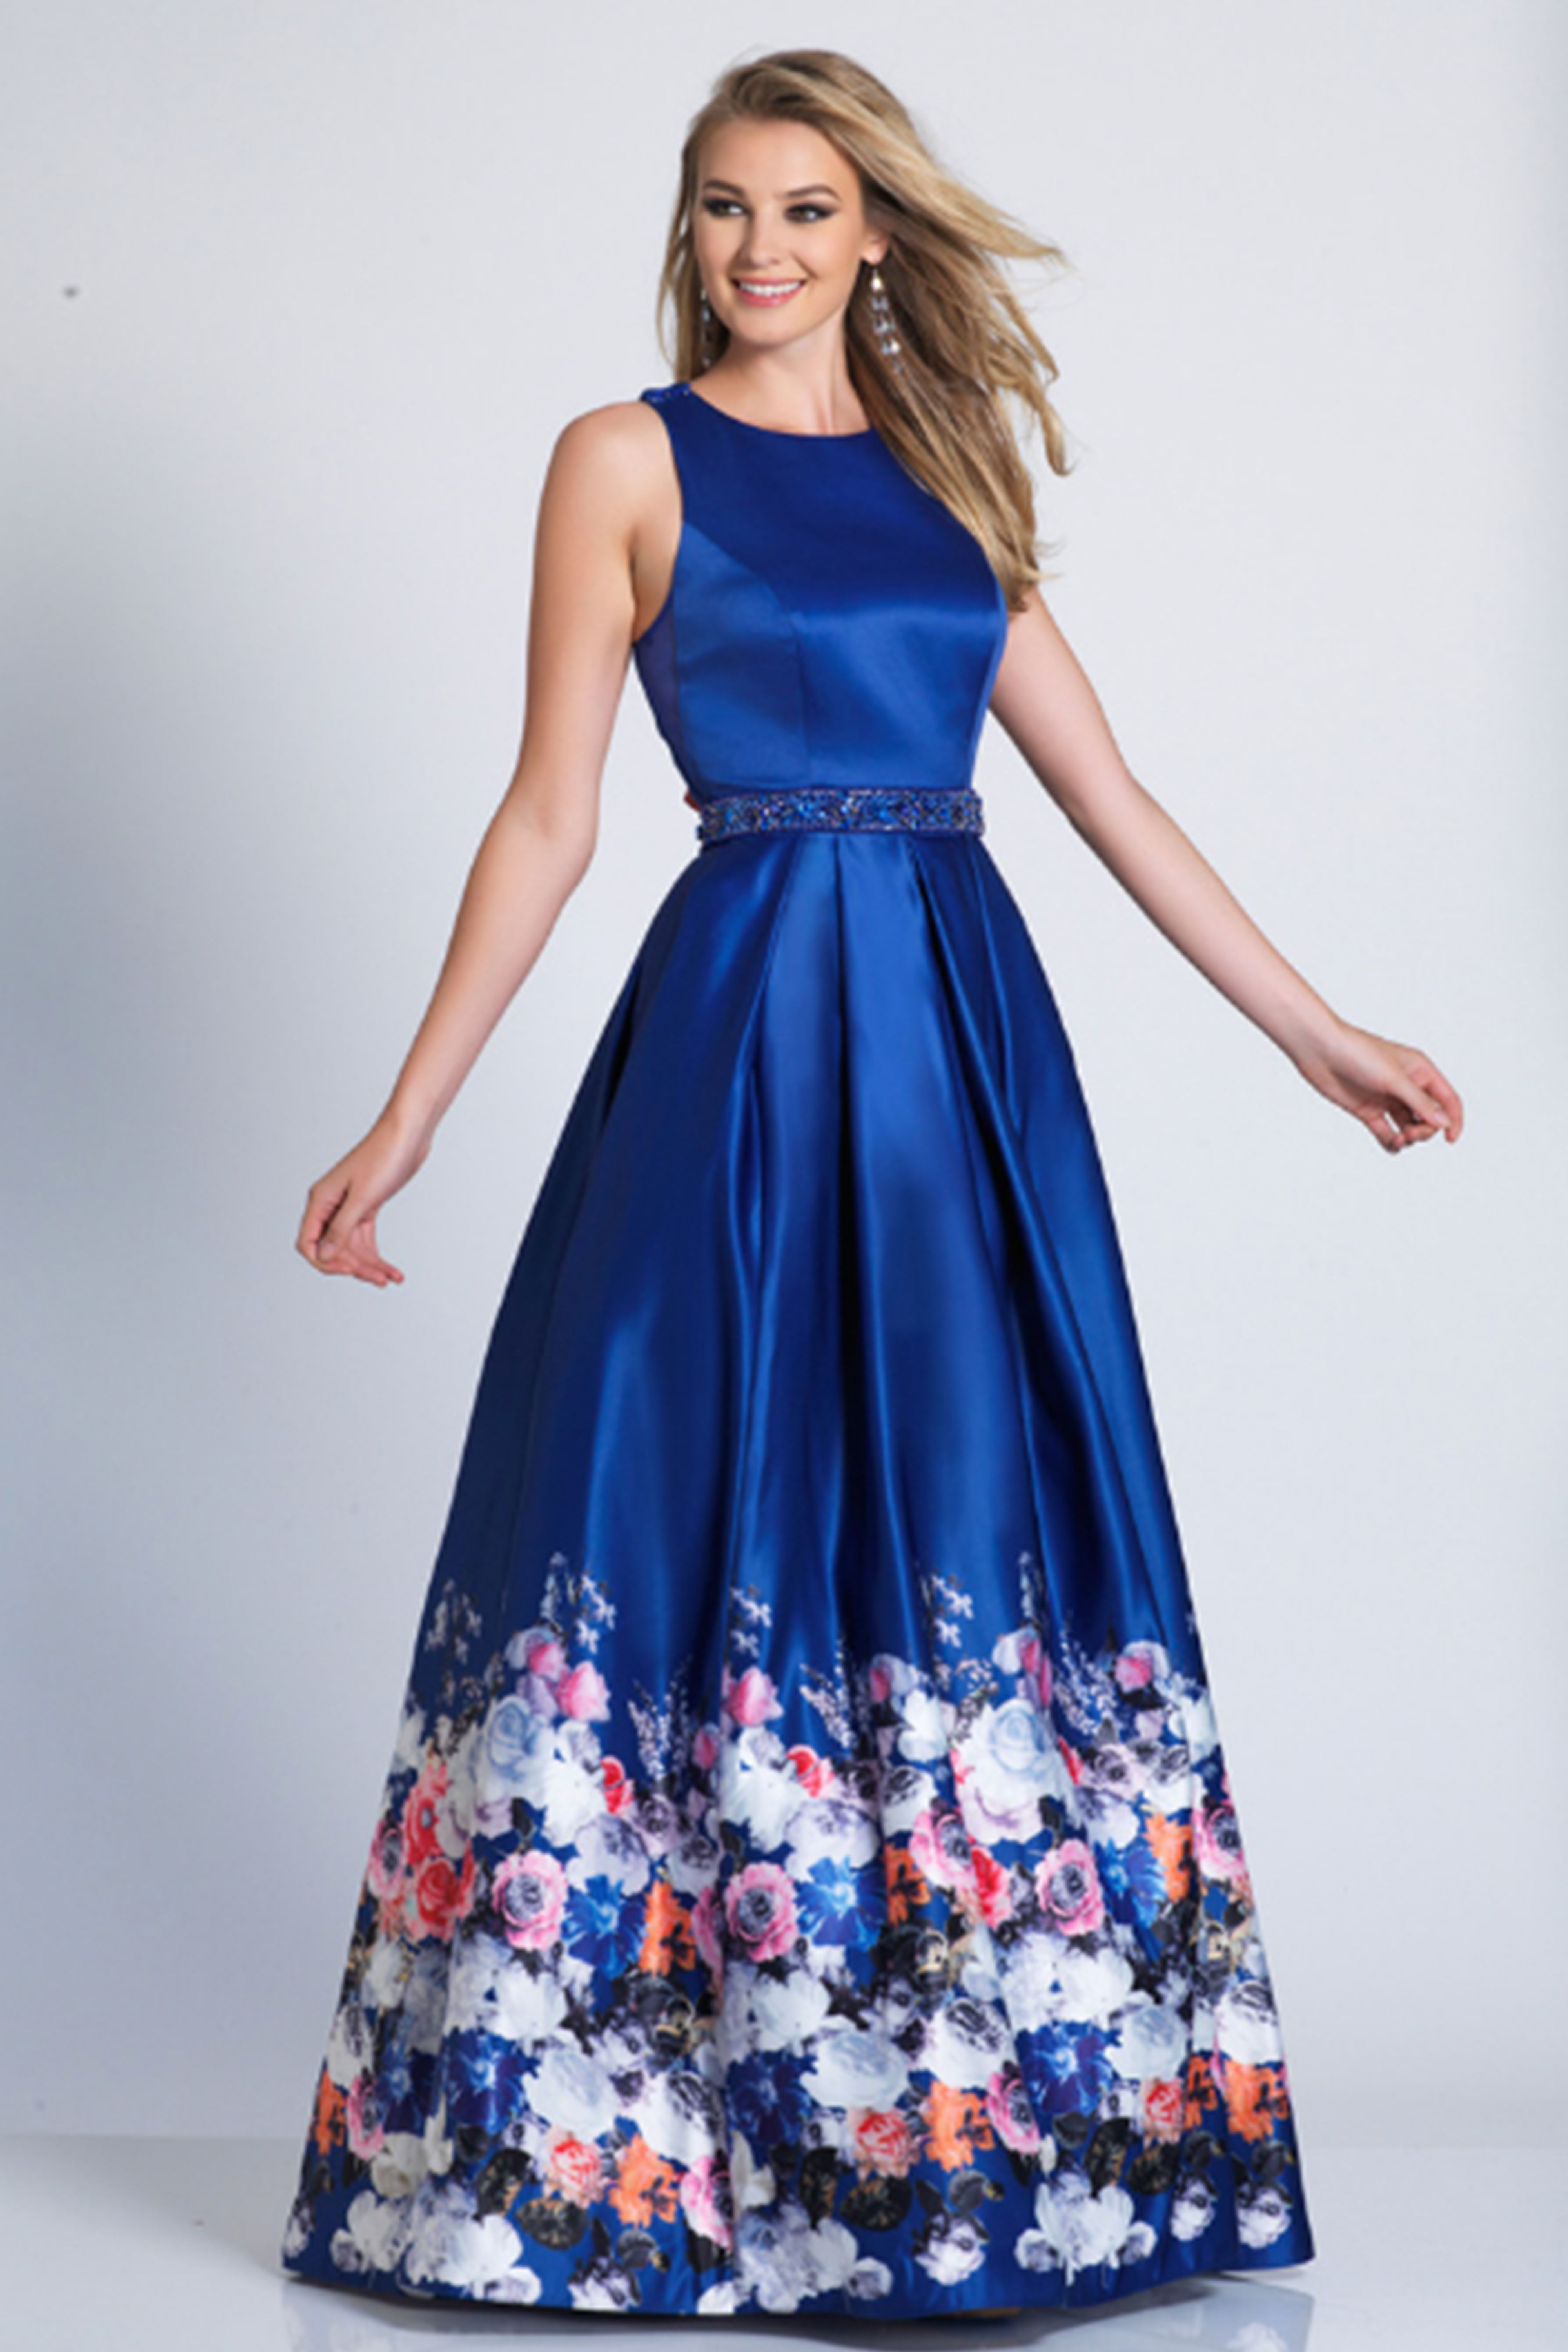 10 Best Blue Prom Dresses for 2018 in Royal Navy and Baby Blue